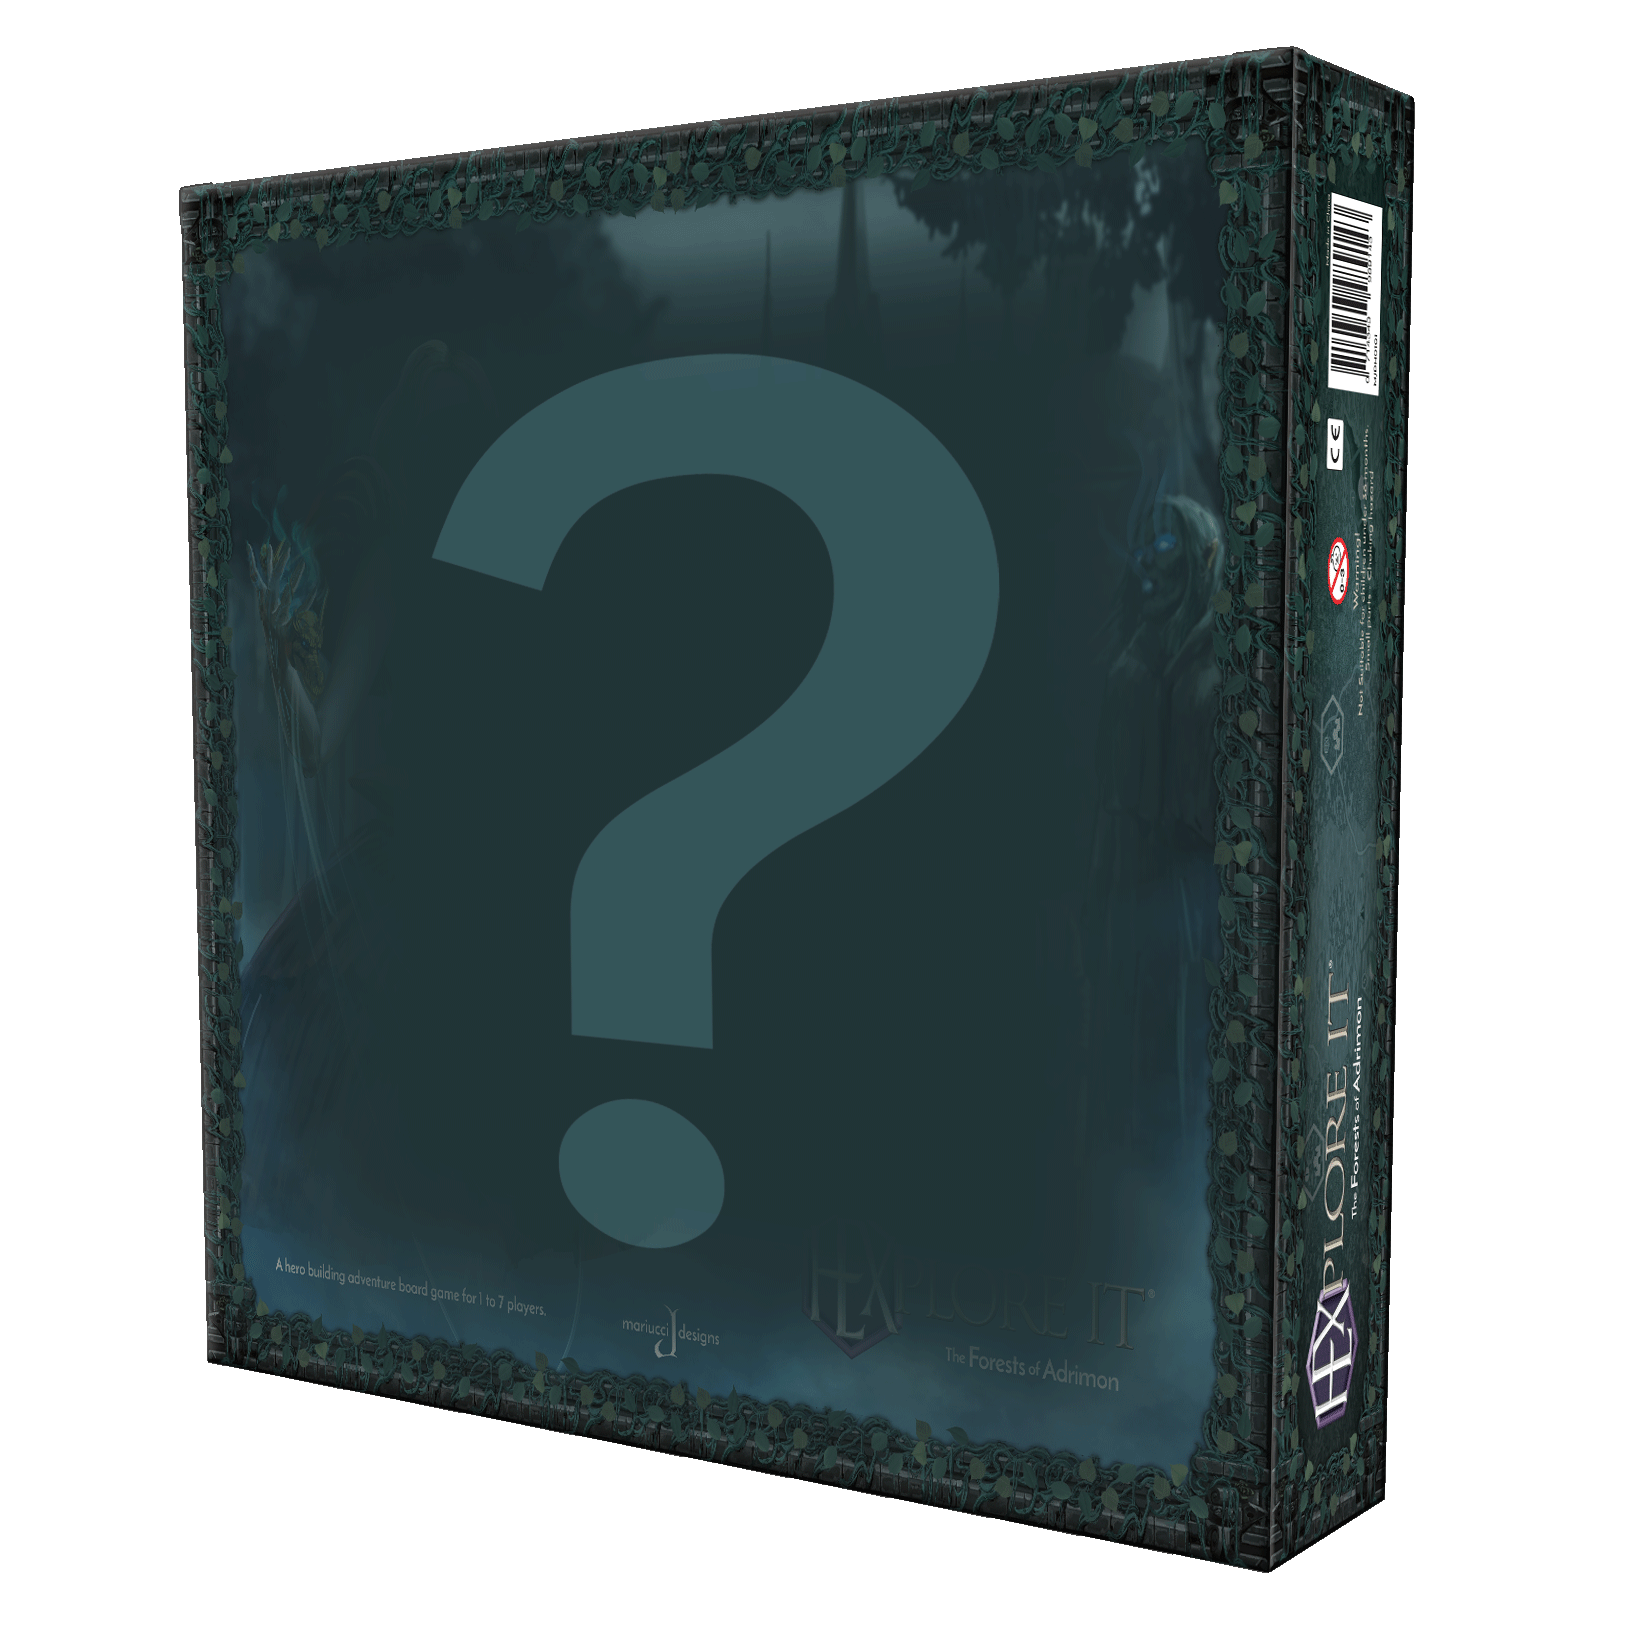 [02]-HEX_Box_FoA_Tall-UNREVEALED